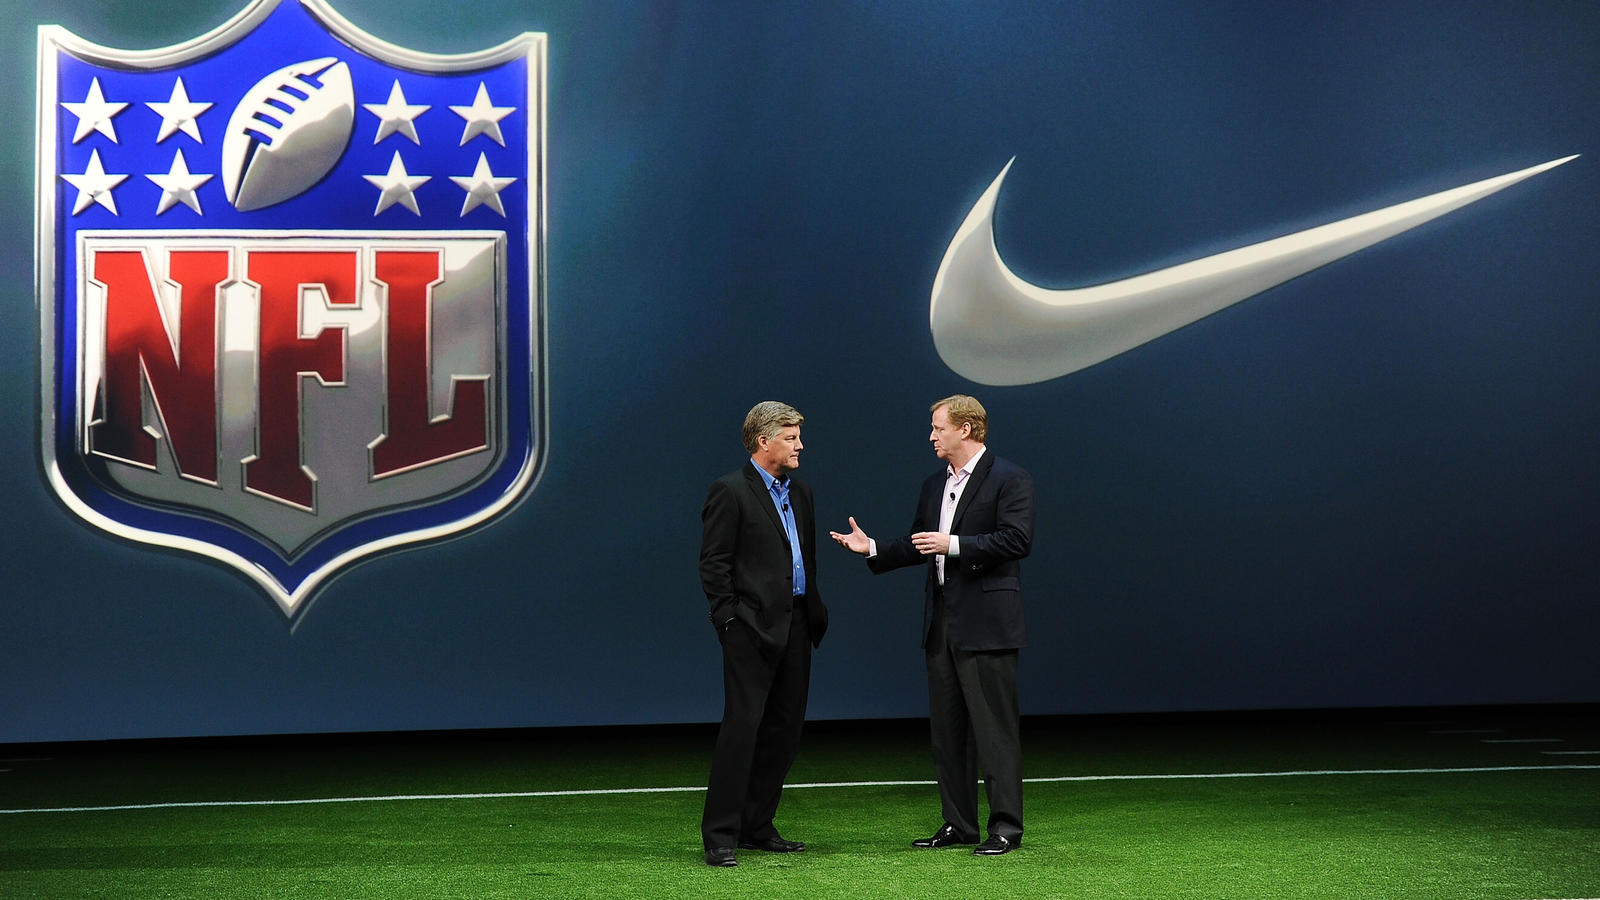 teatro saltar Indirecto  NIKE PARTNER WITH NFL ON A VIRTUAL TRAINING EXPERIENCE!